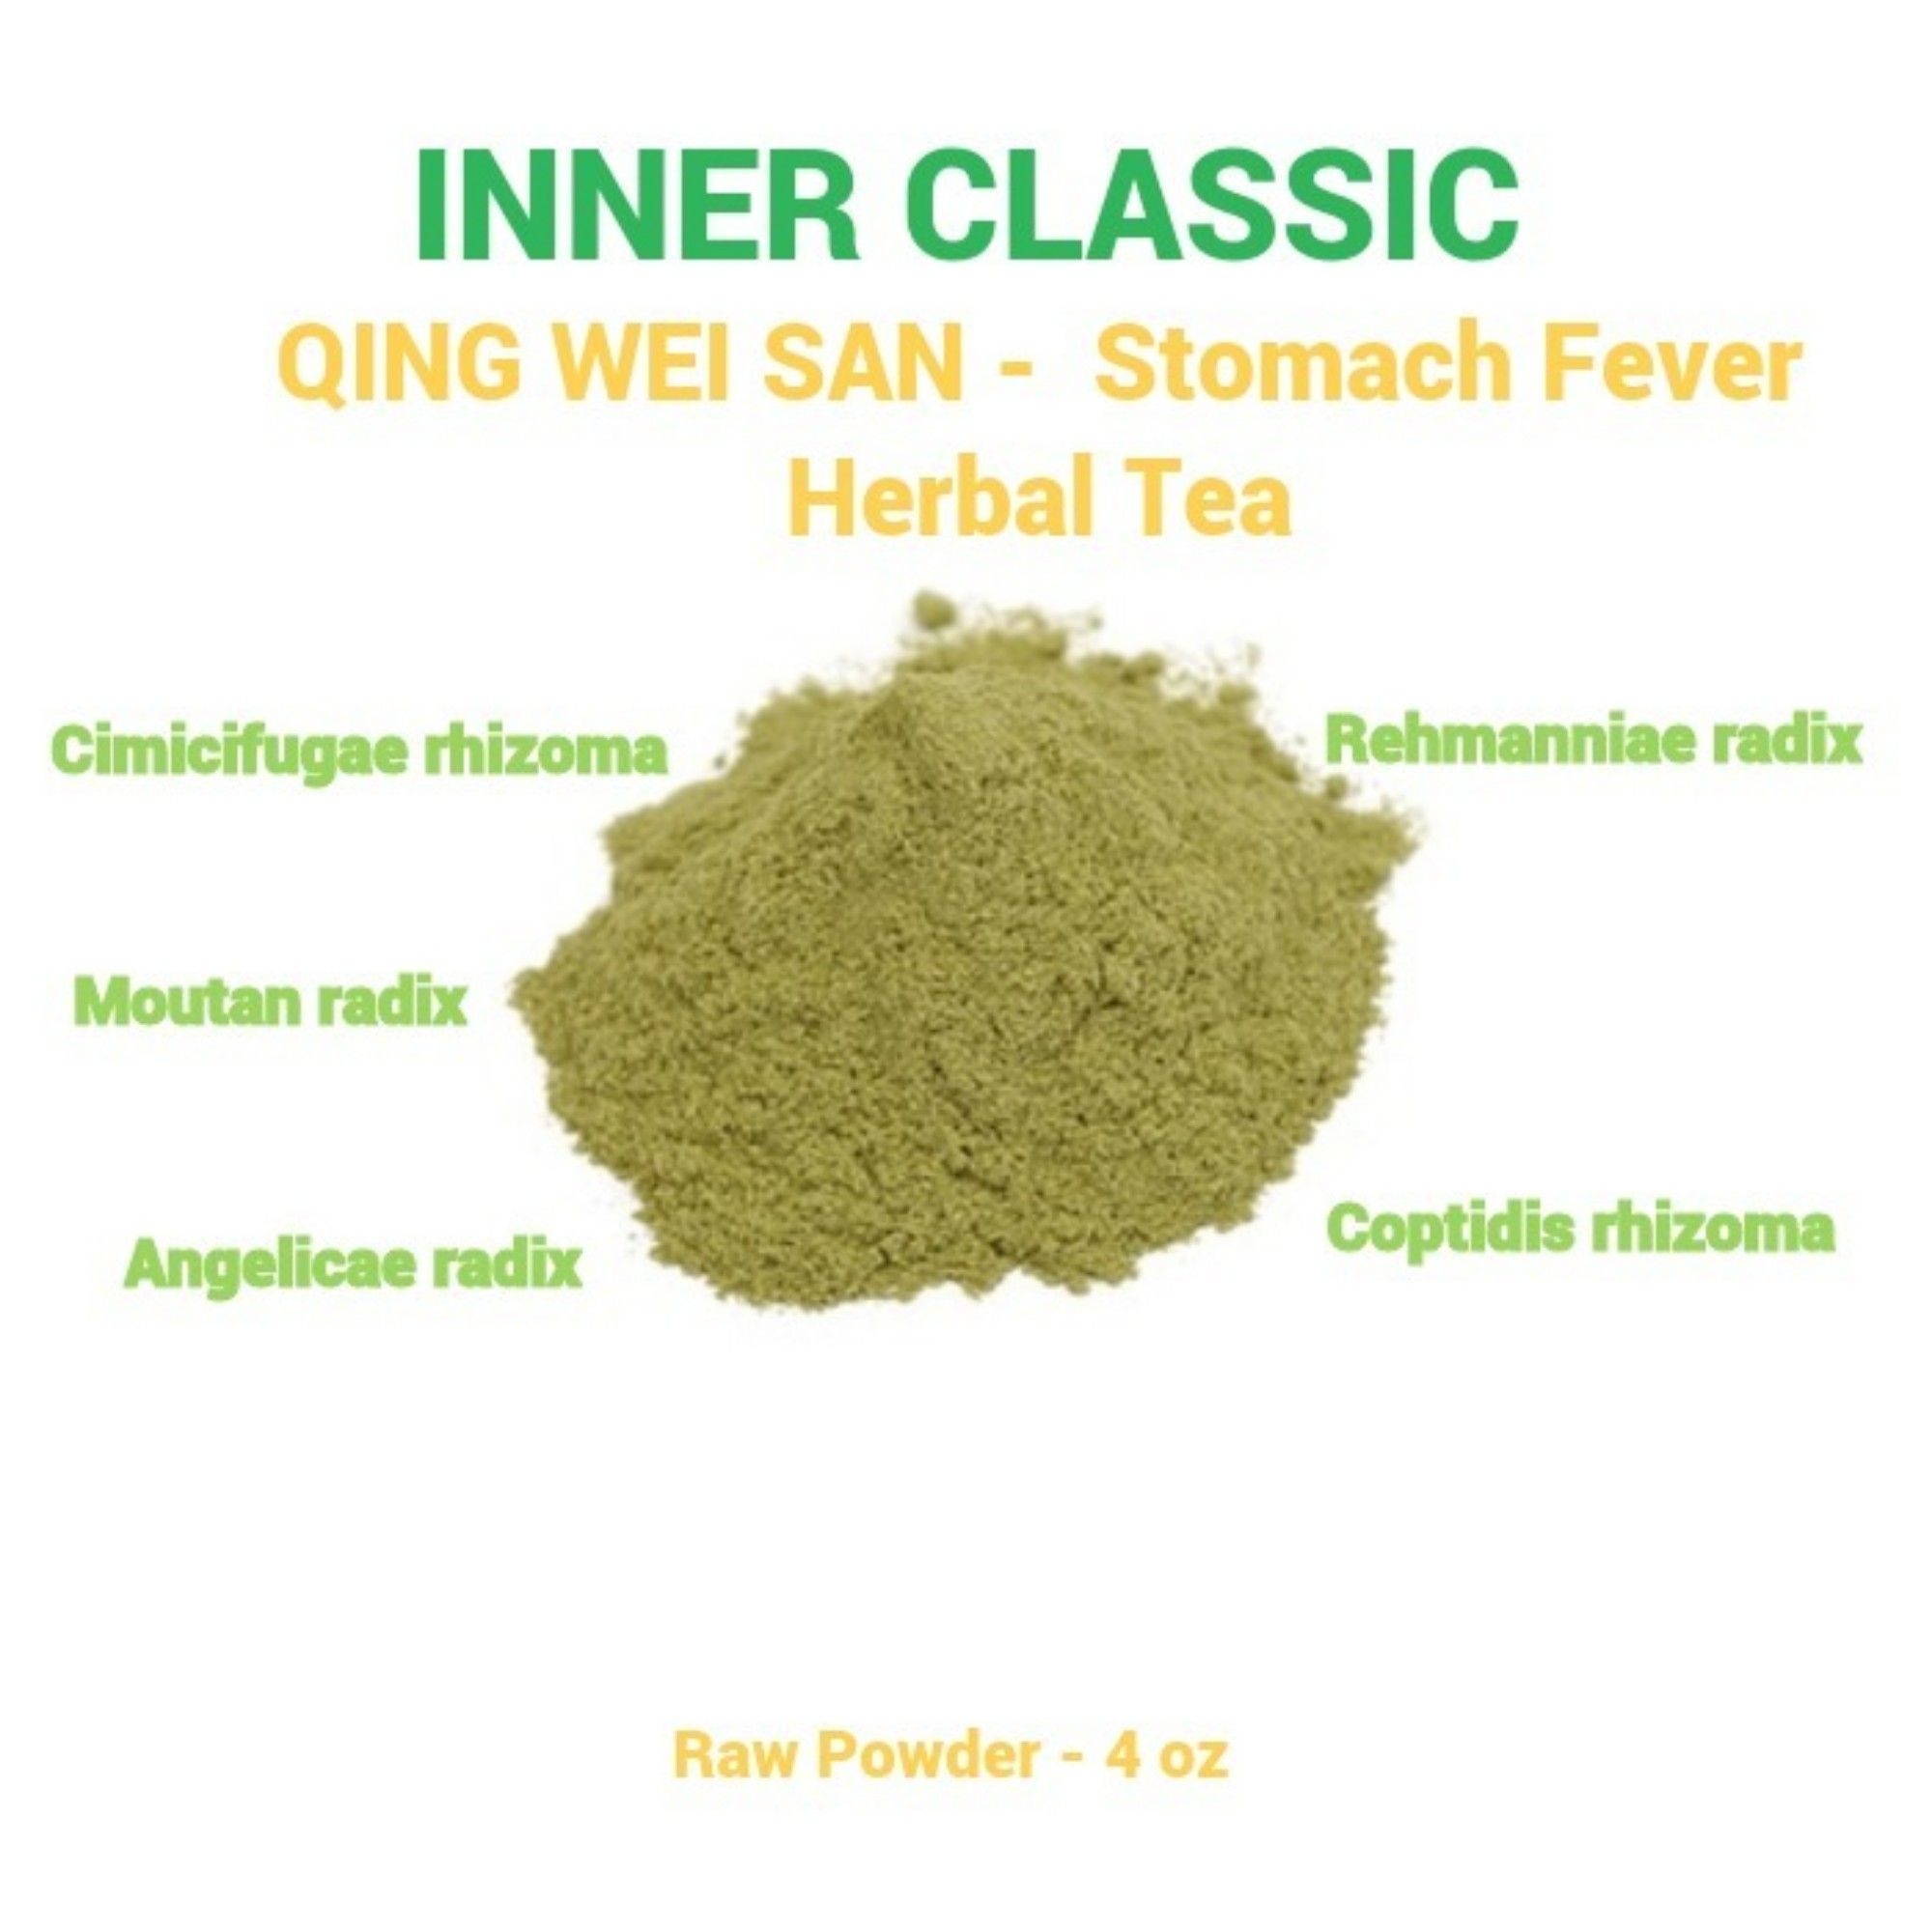 Qing Wei San Is Traditional Chinese Medicine That Is Used For